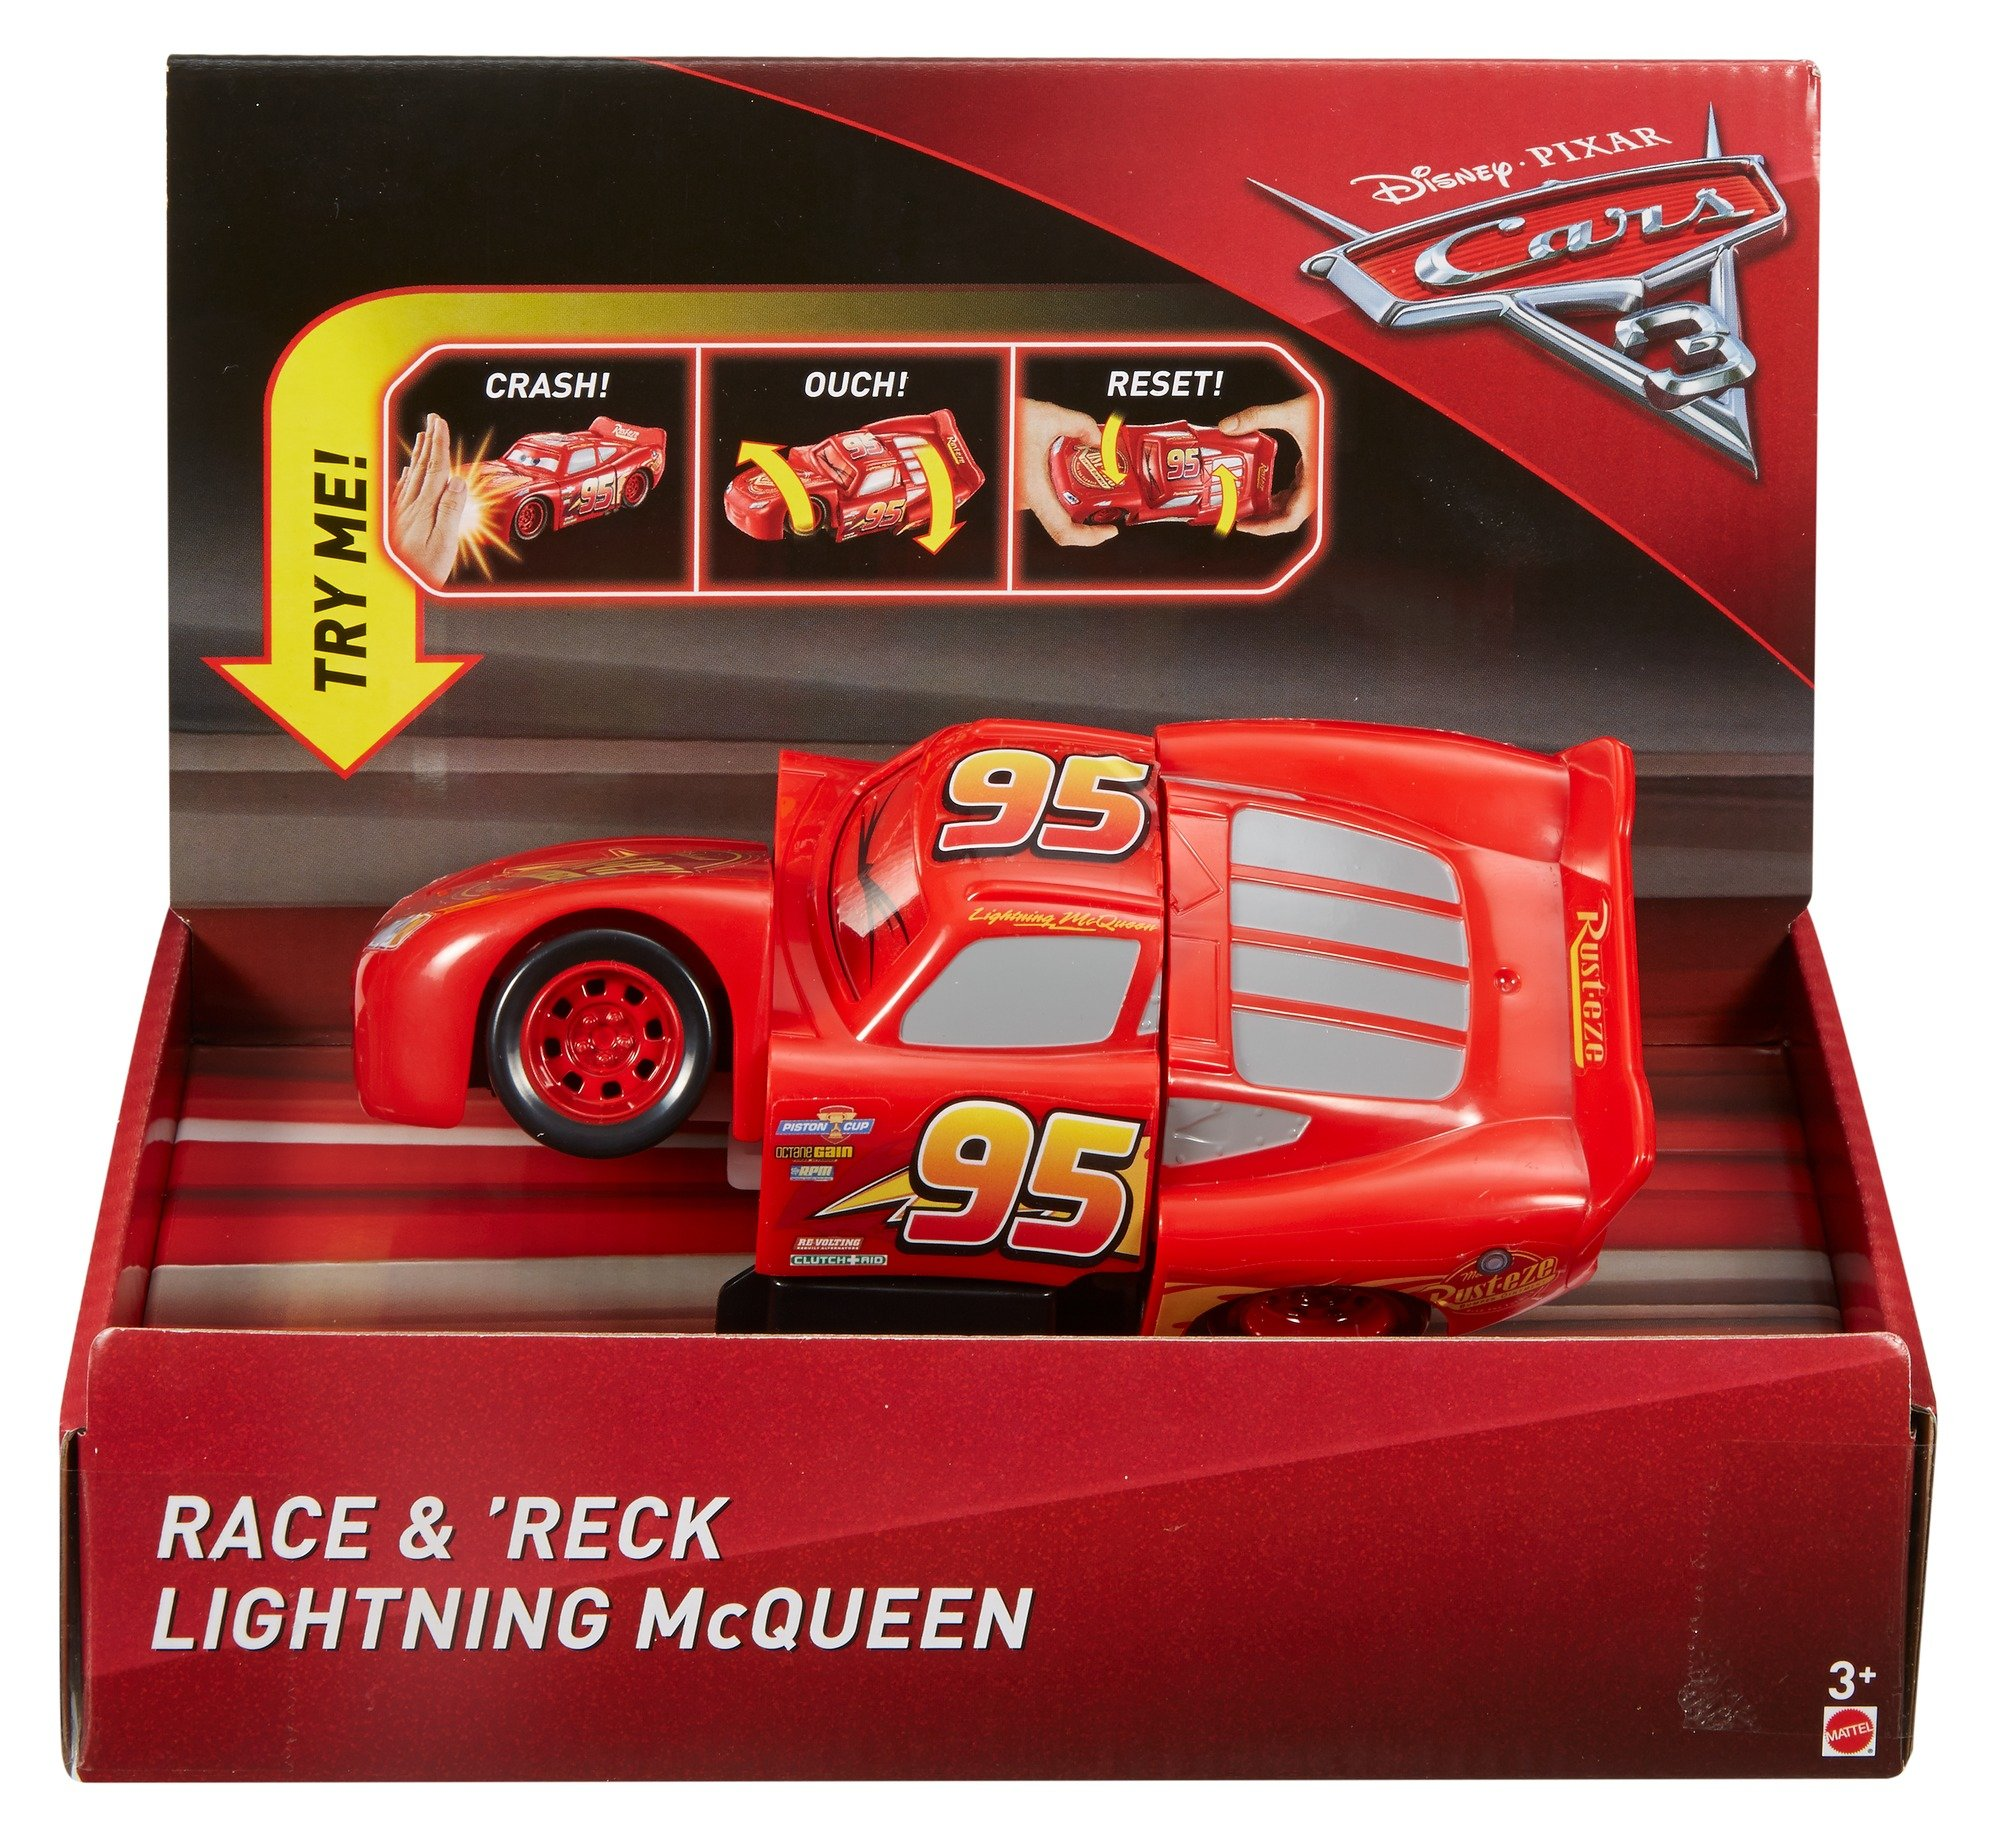 Disney DYW39 Pixar Cars 3 Race and Reck Lightning McQueen Vehicle Disney New Disney Pixar Cars 3 Twisted Crashers vehicle.  His body twists and his eyes change after the crash!  Restore him to his former; pre smash glory by simply twisting the car back into place! 4